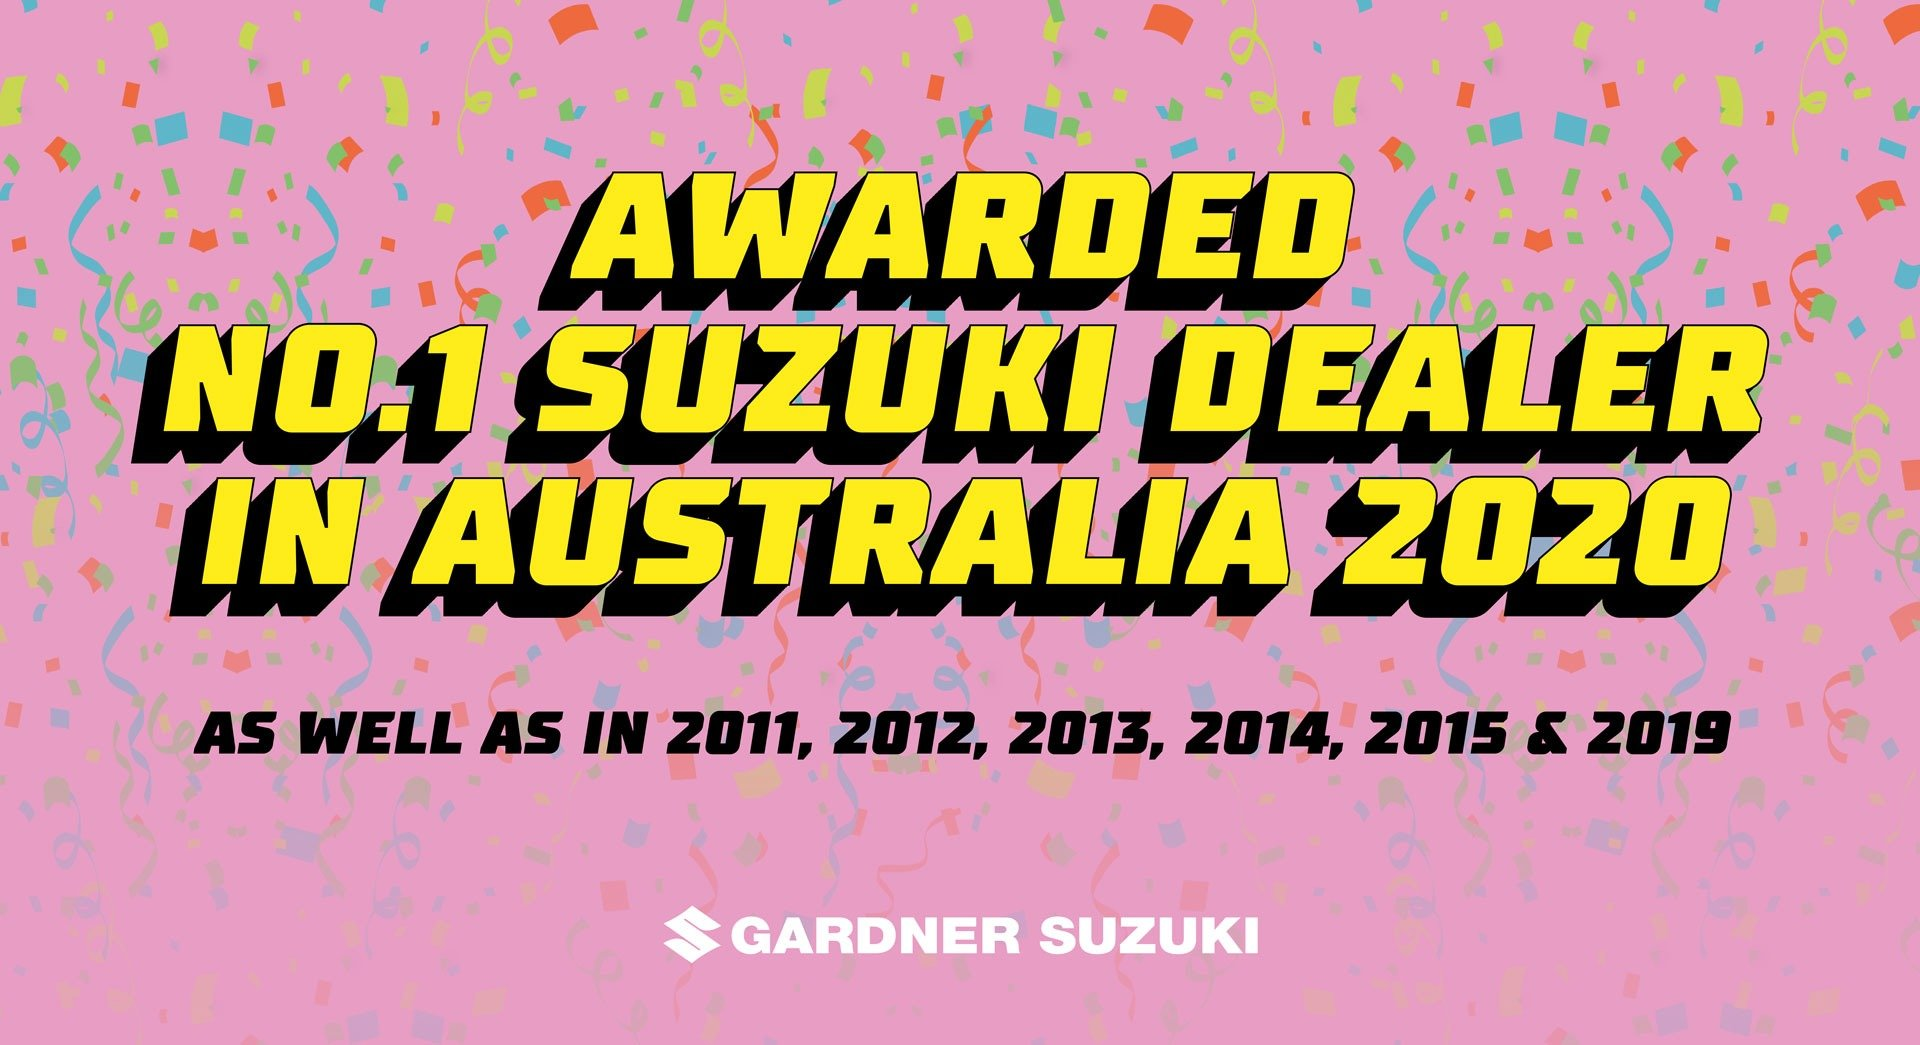 NO.1 Suzuki Dealer in Australia Perth 2020